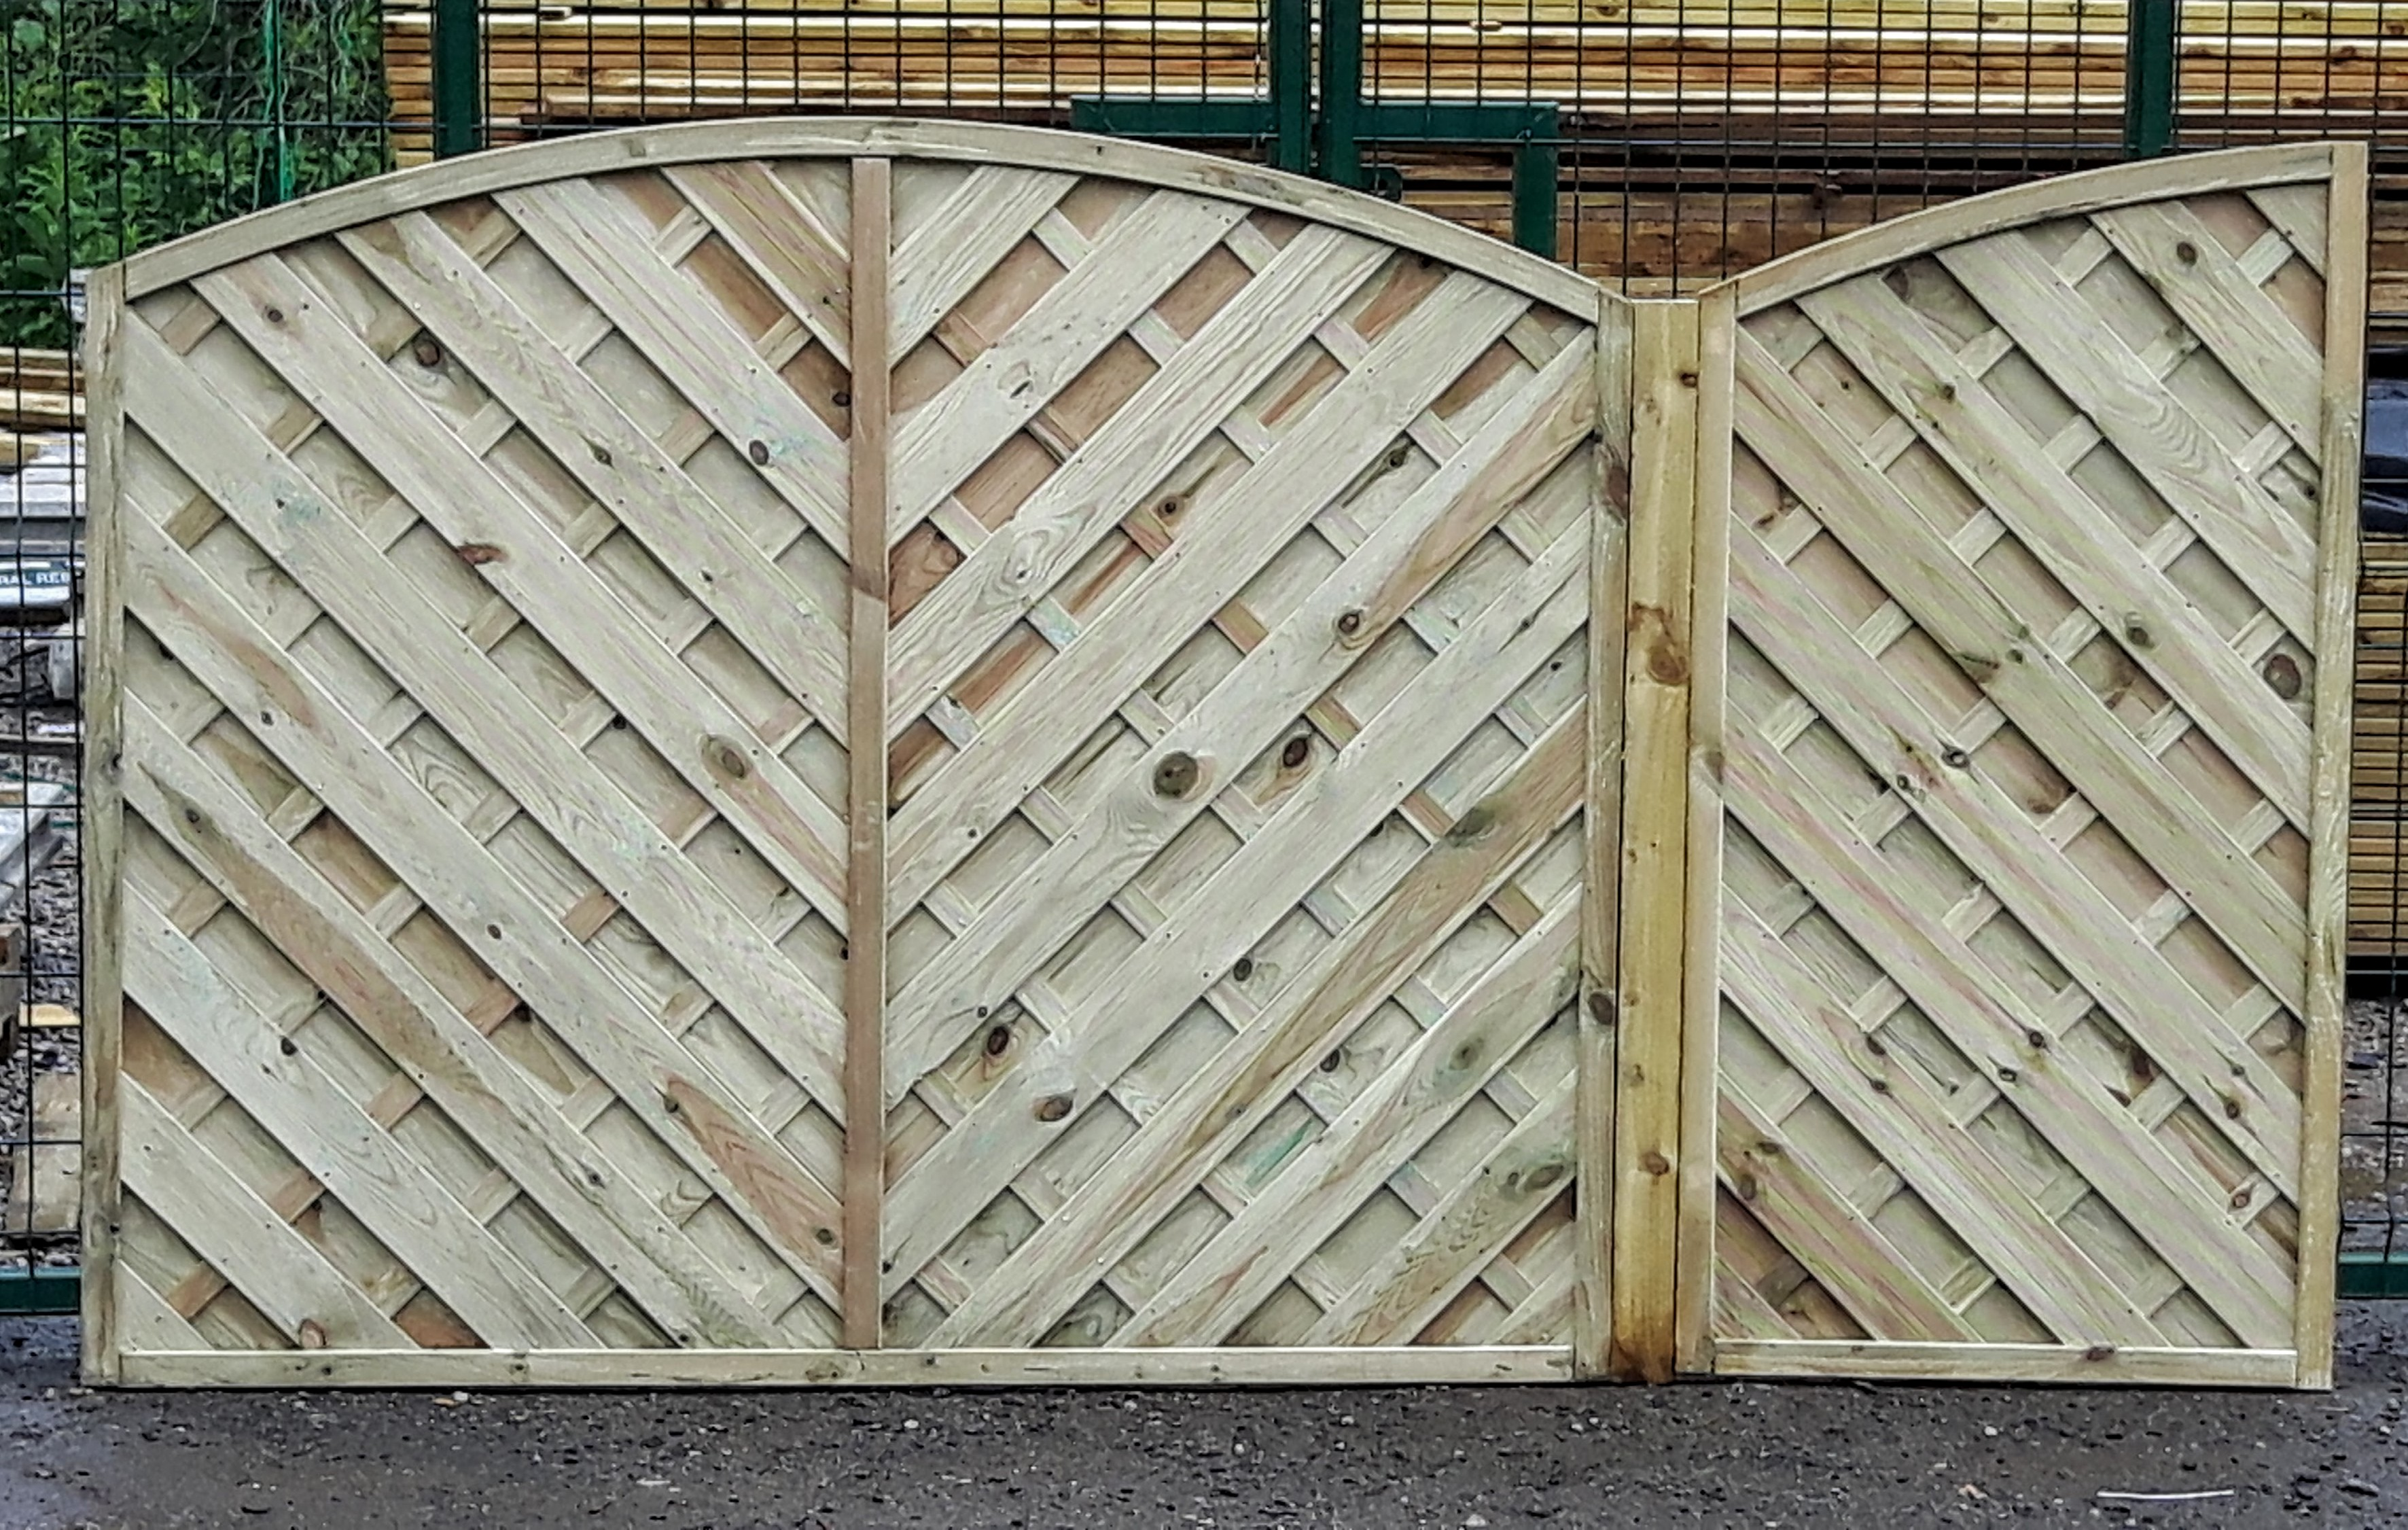 Ukdeckit trade prices direct to the public made to measure fence panels baanklon Choice Image